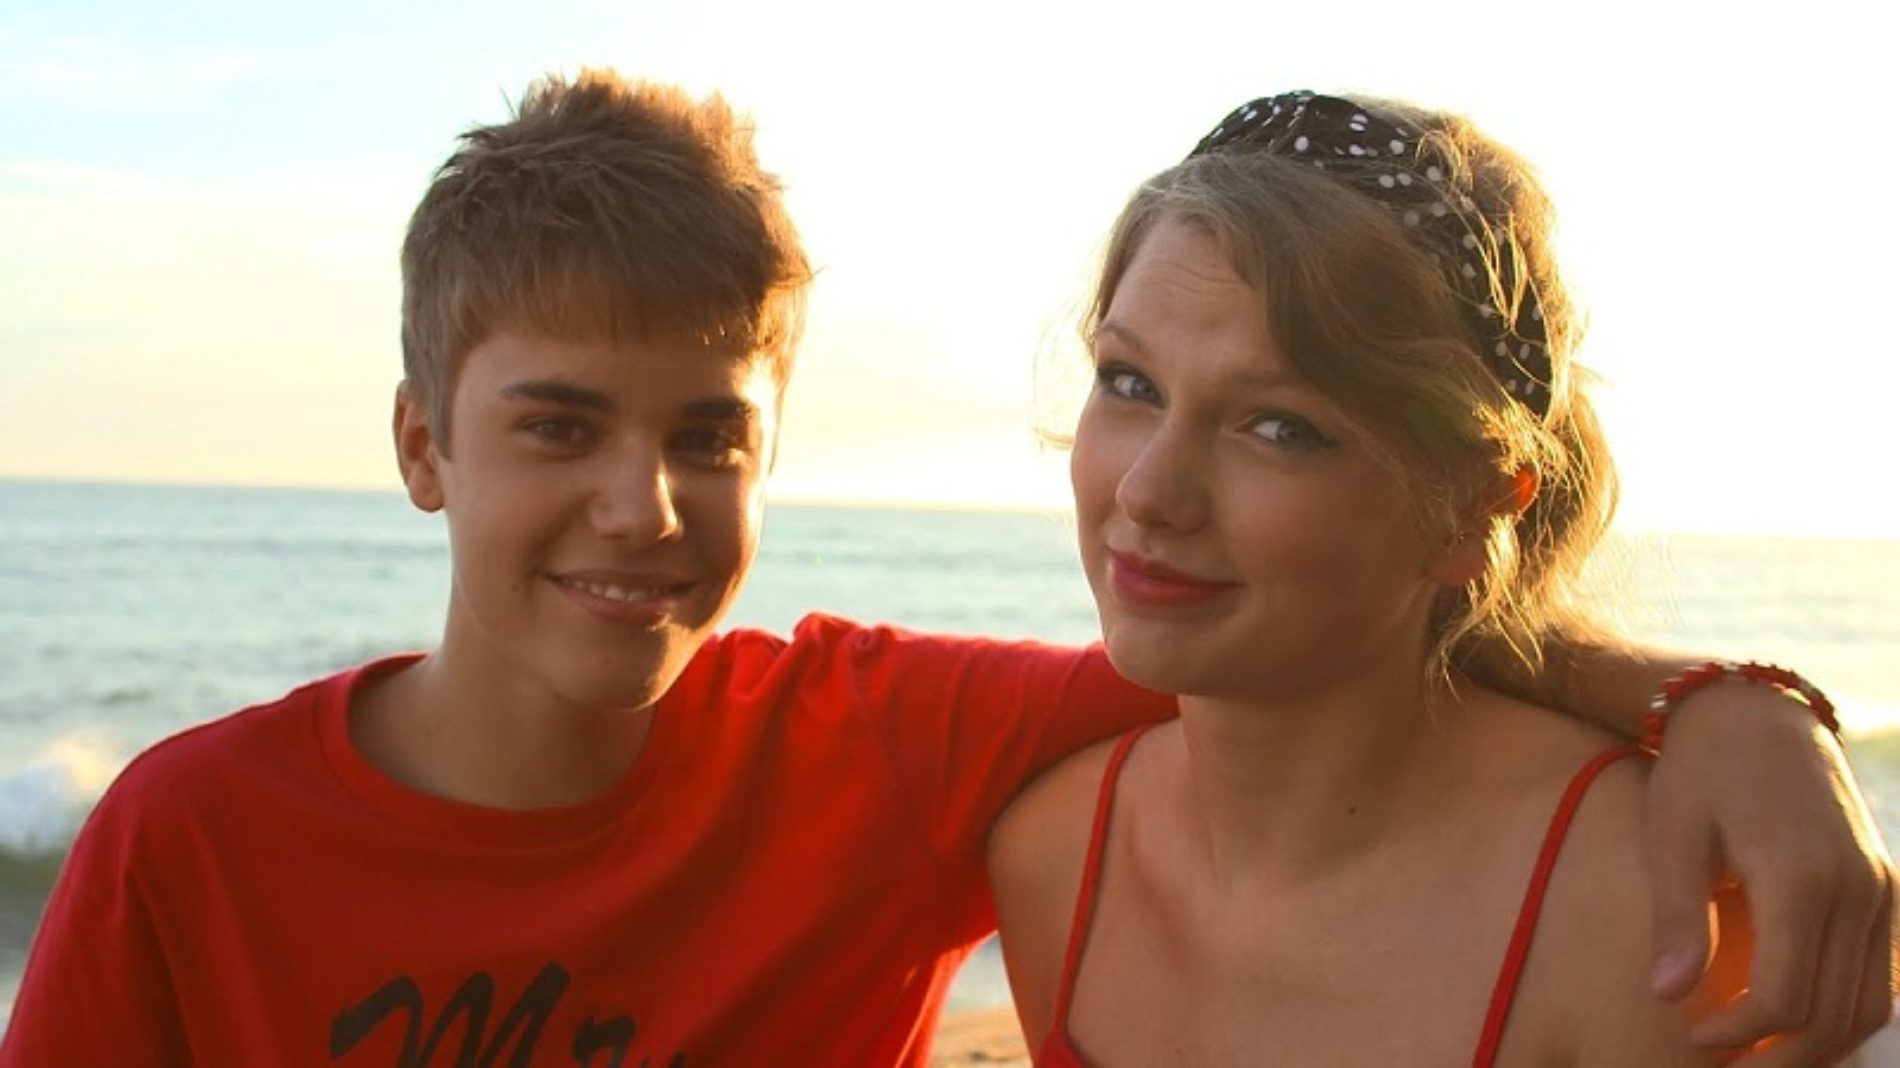 Photo: When Taylor Swift And Justin Bieber Became A Lesbian Couple